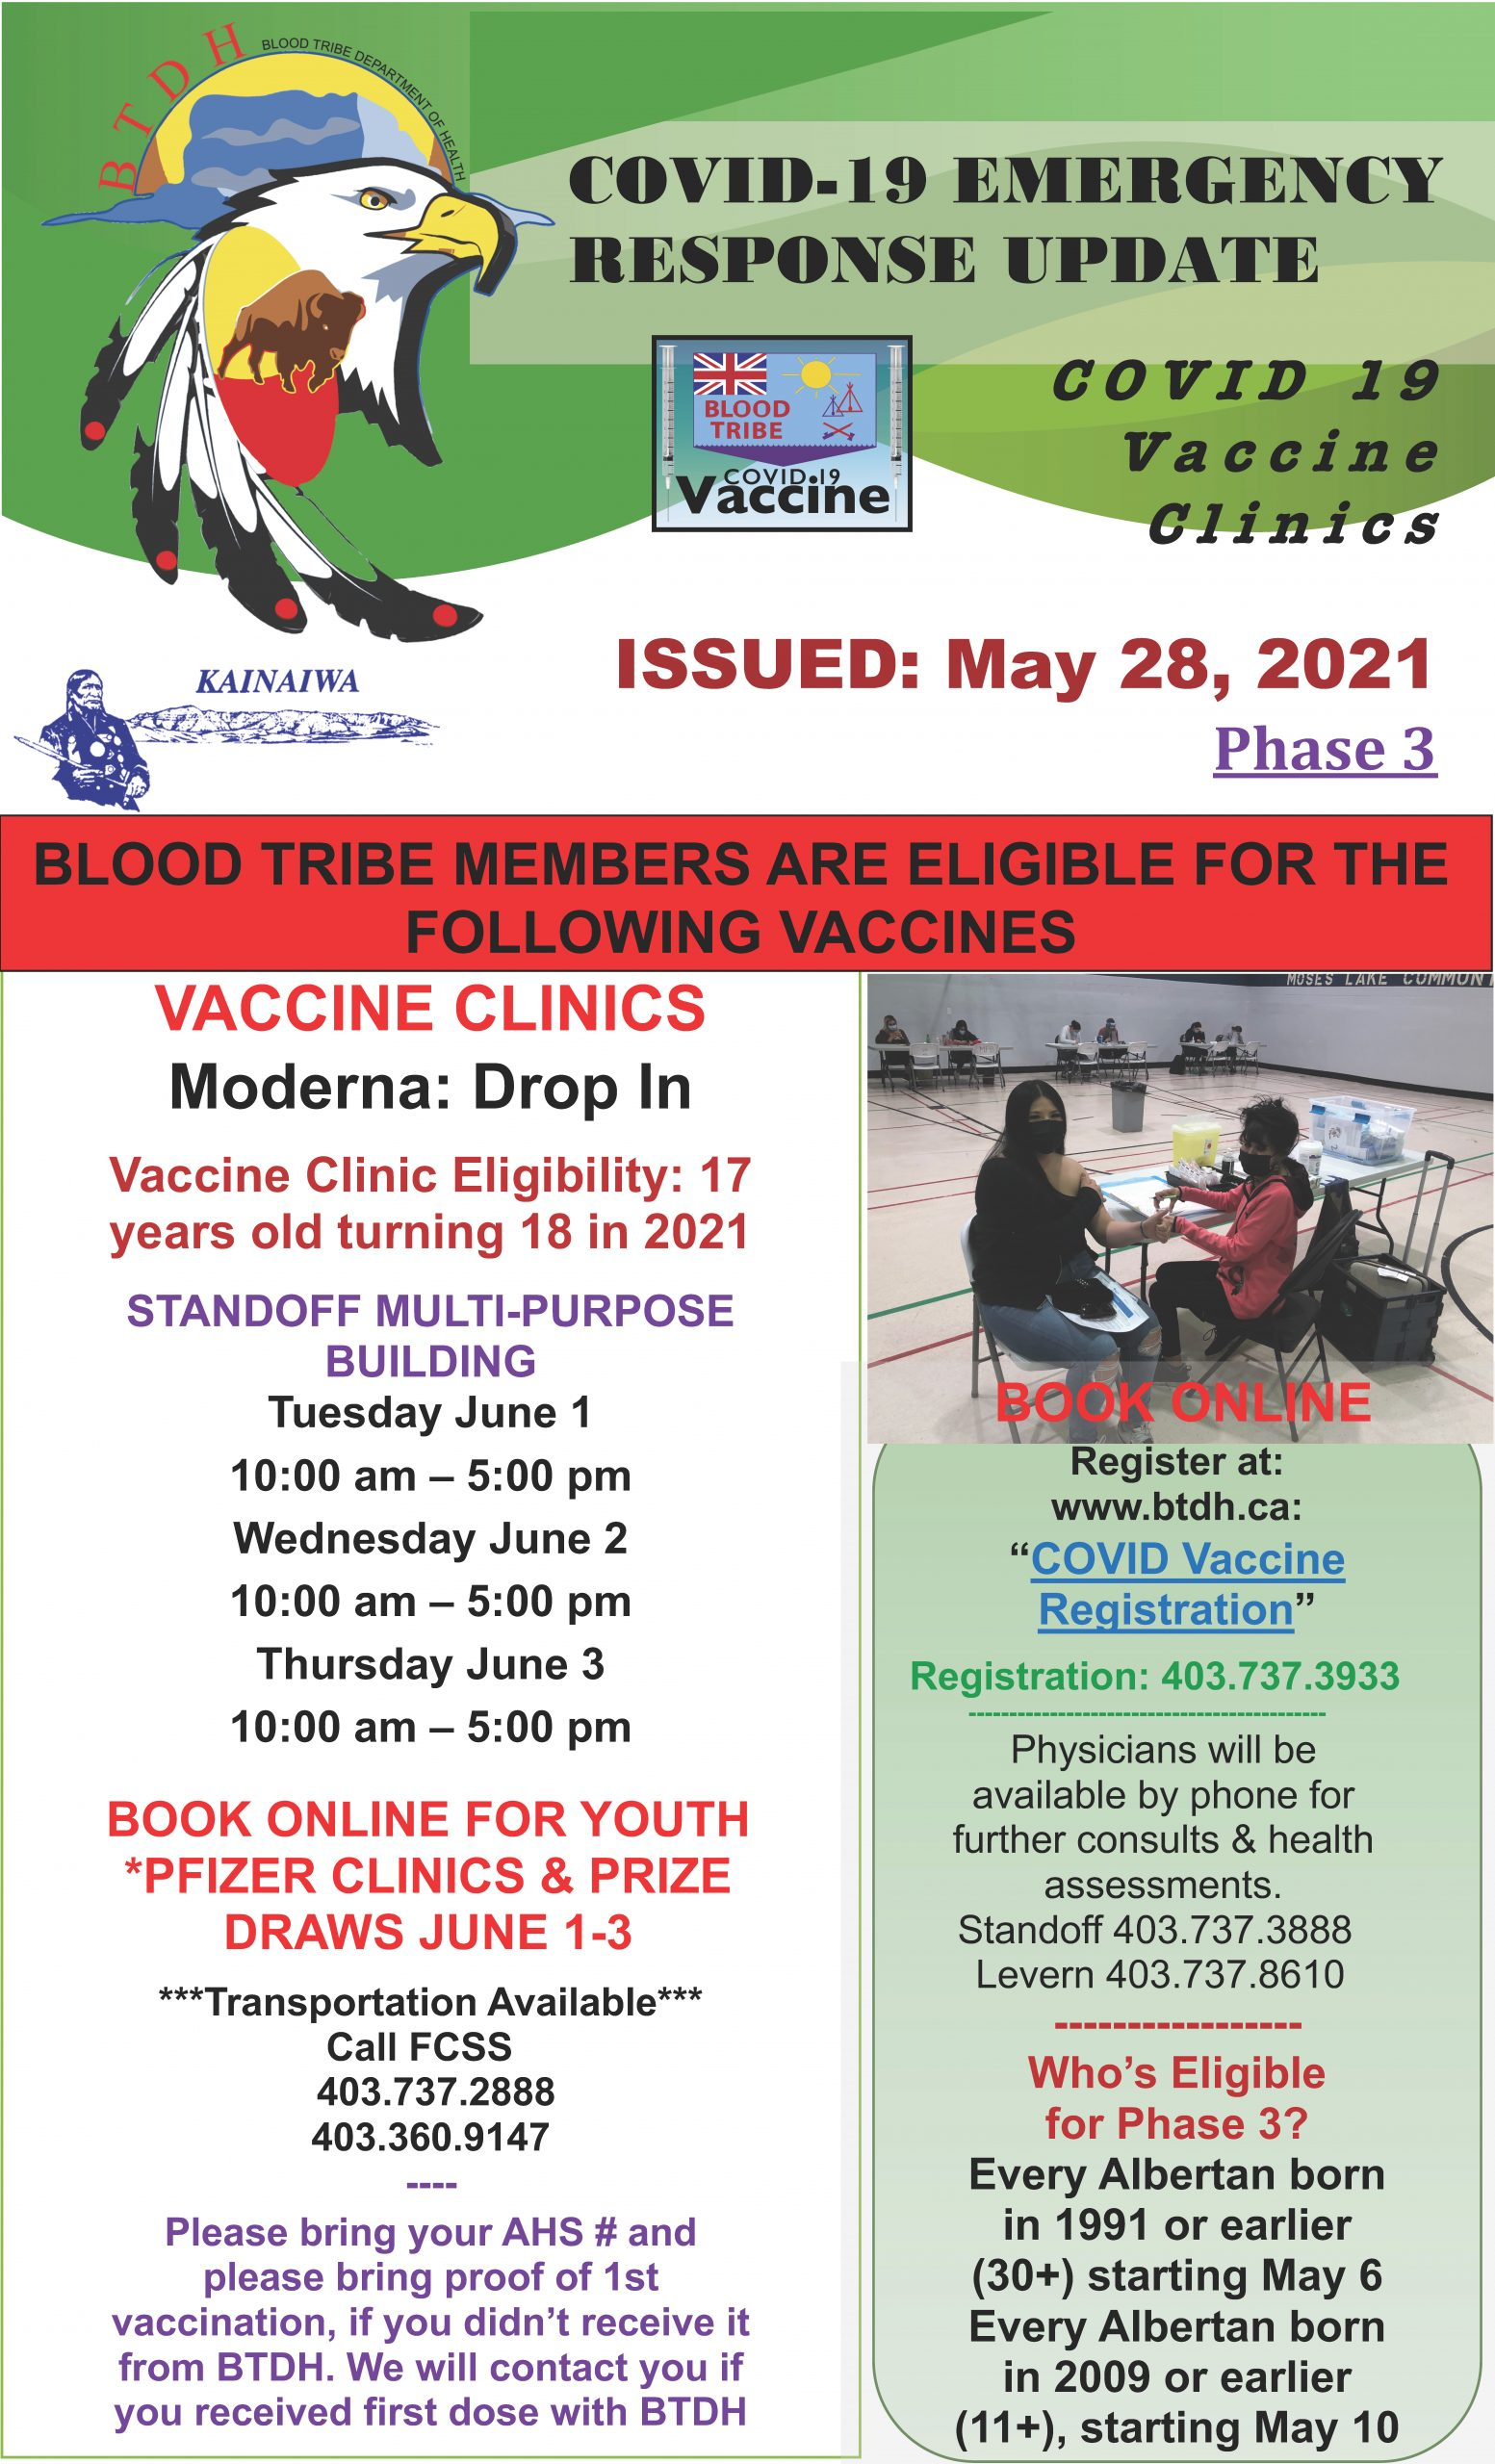 COVID-19 Vaccine Clinic Update - May 28, 2021